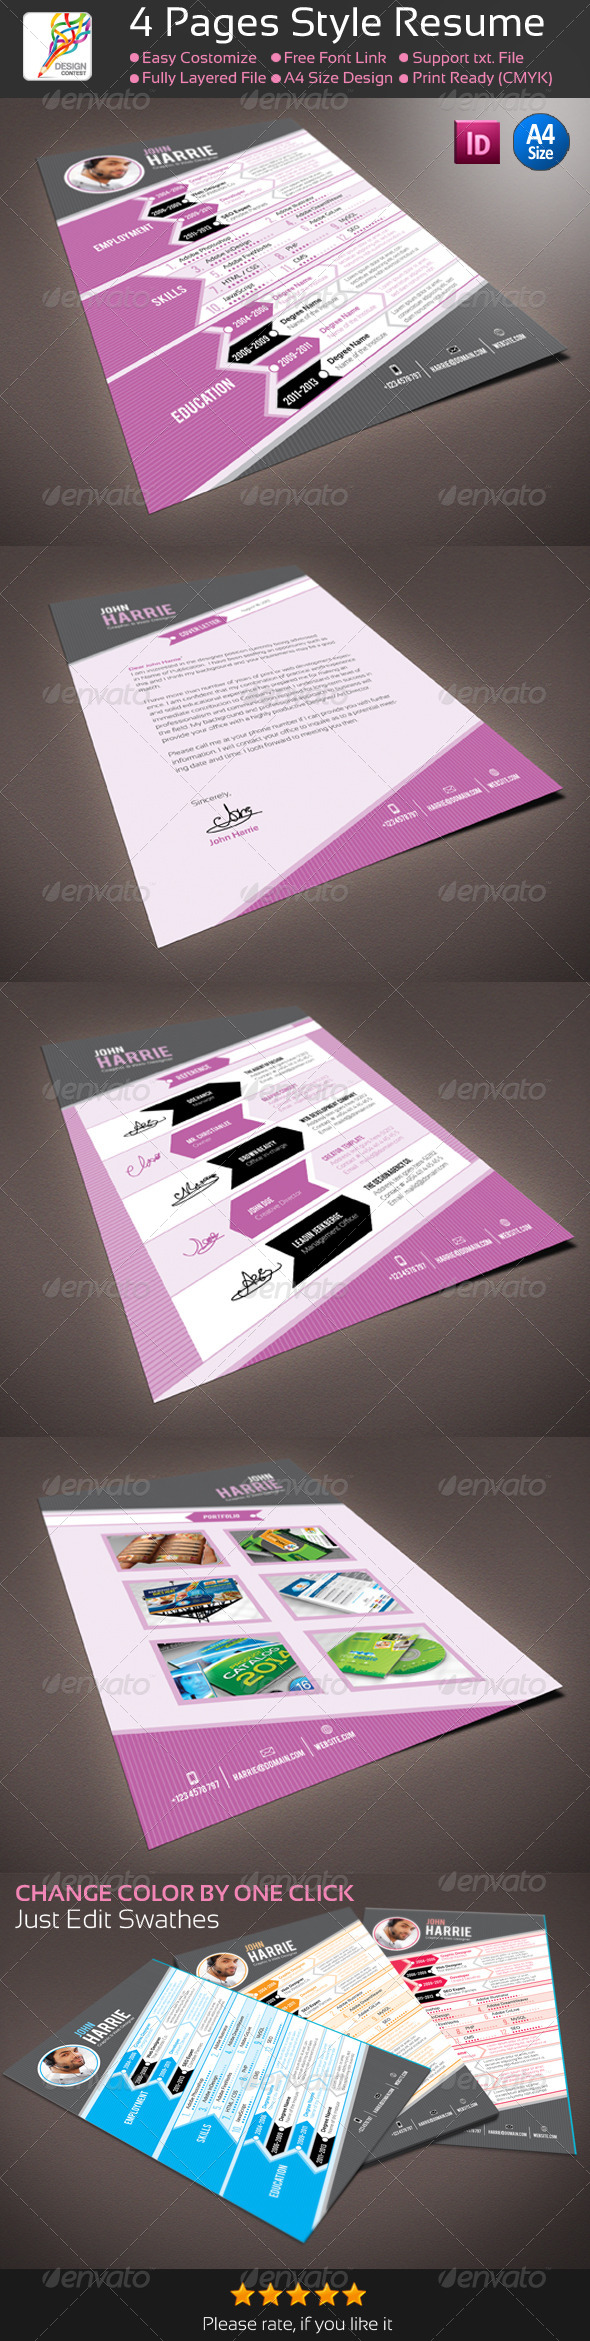 GraphicRiver 4 Pages InDesign Style Resume CV 5456610